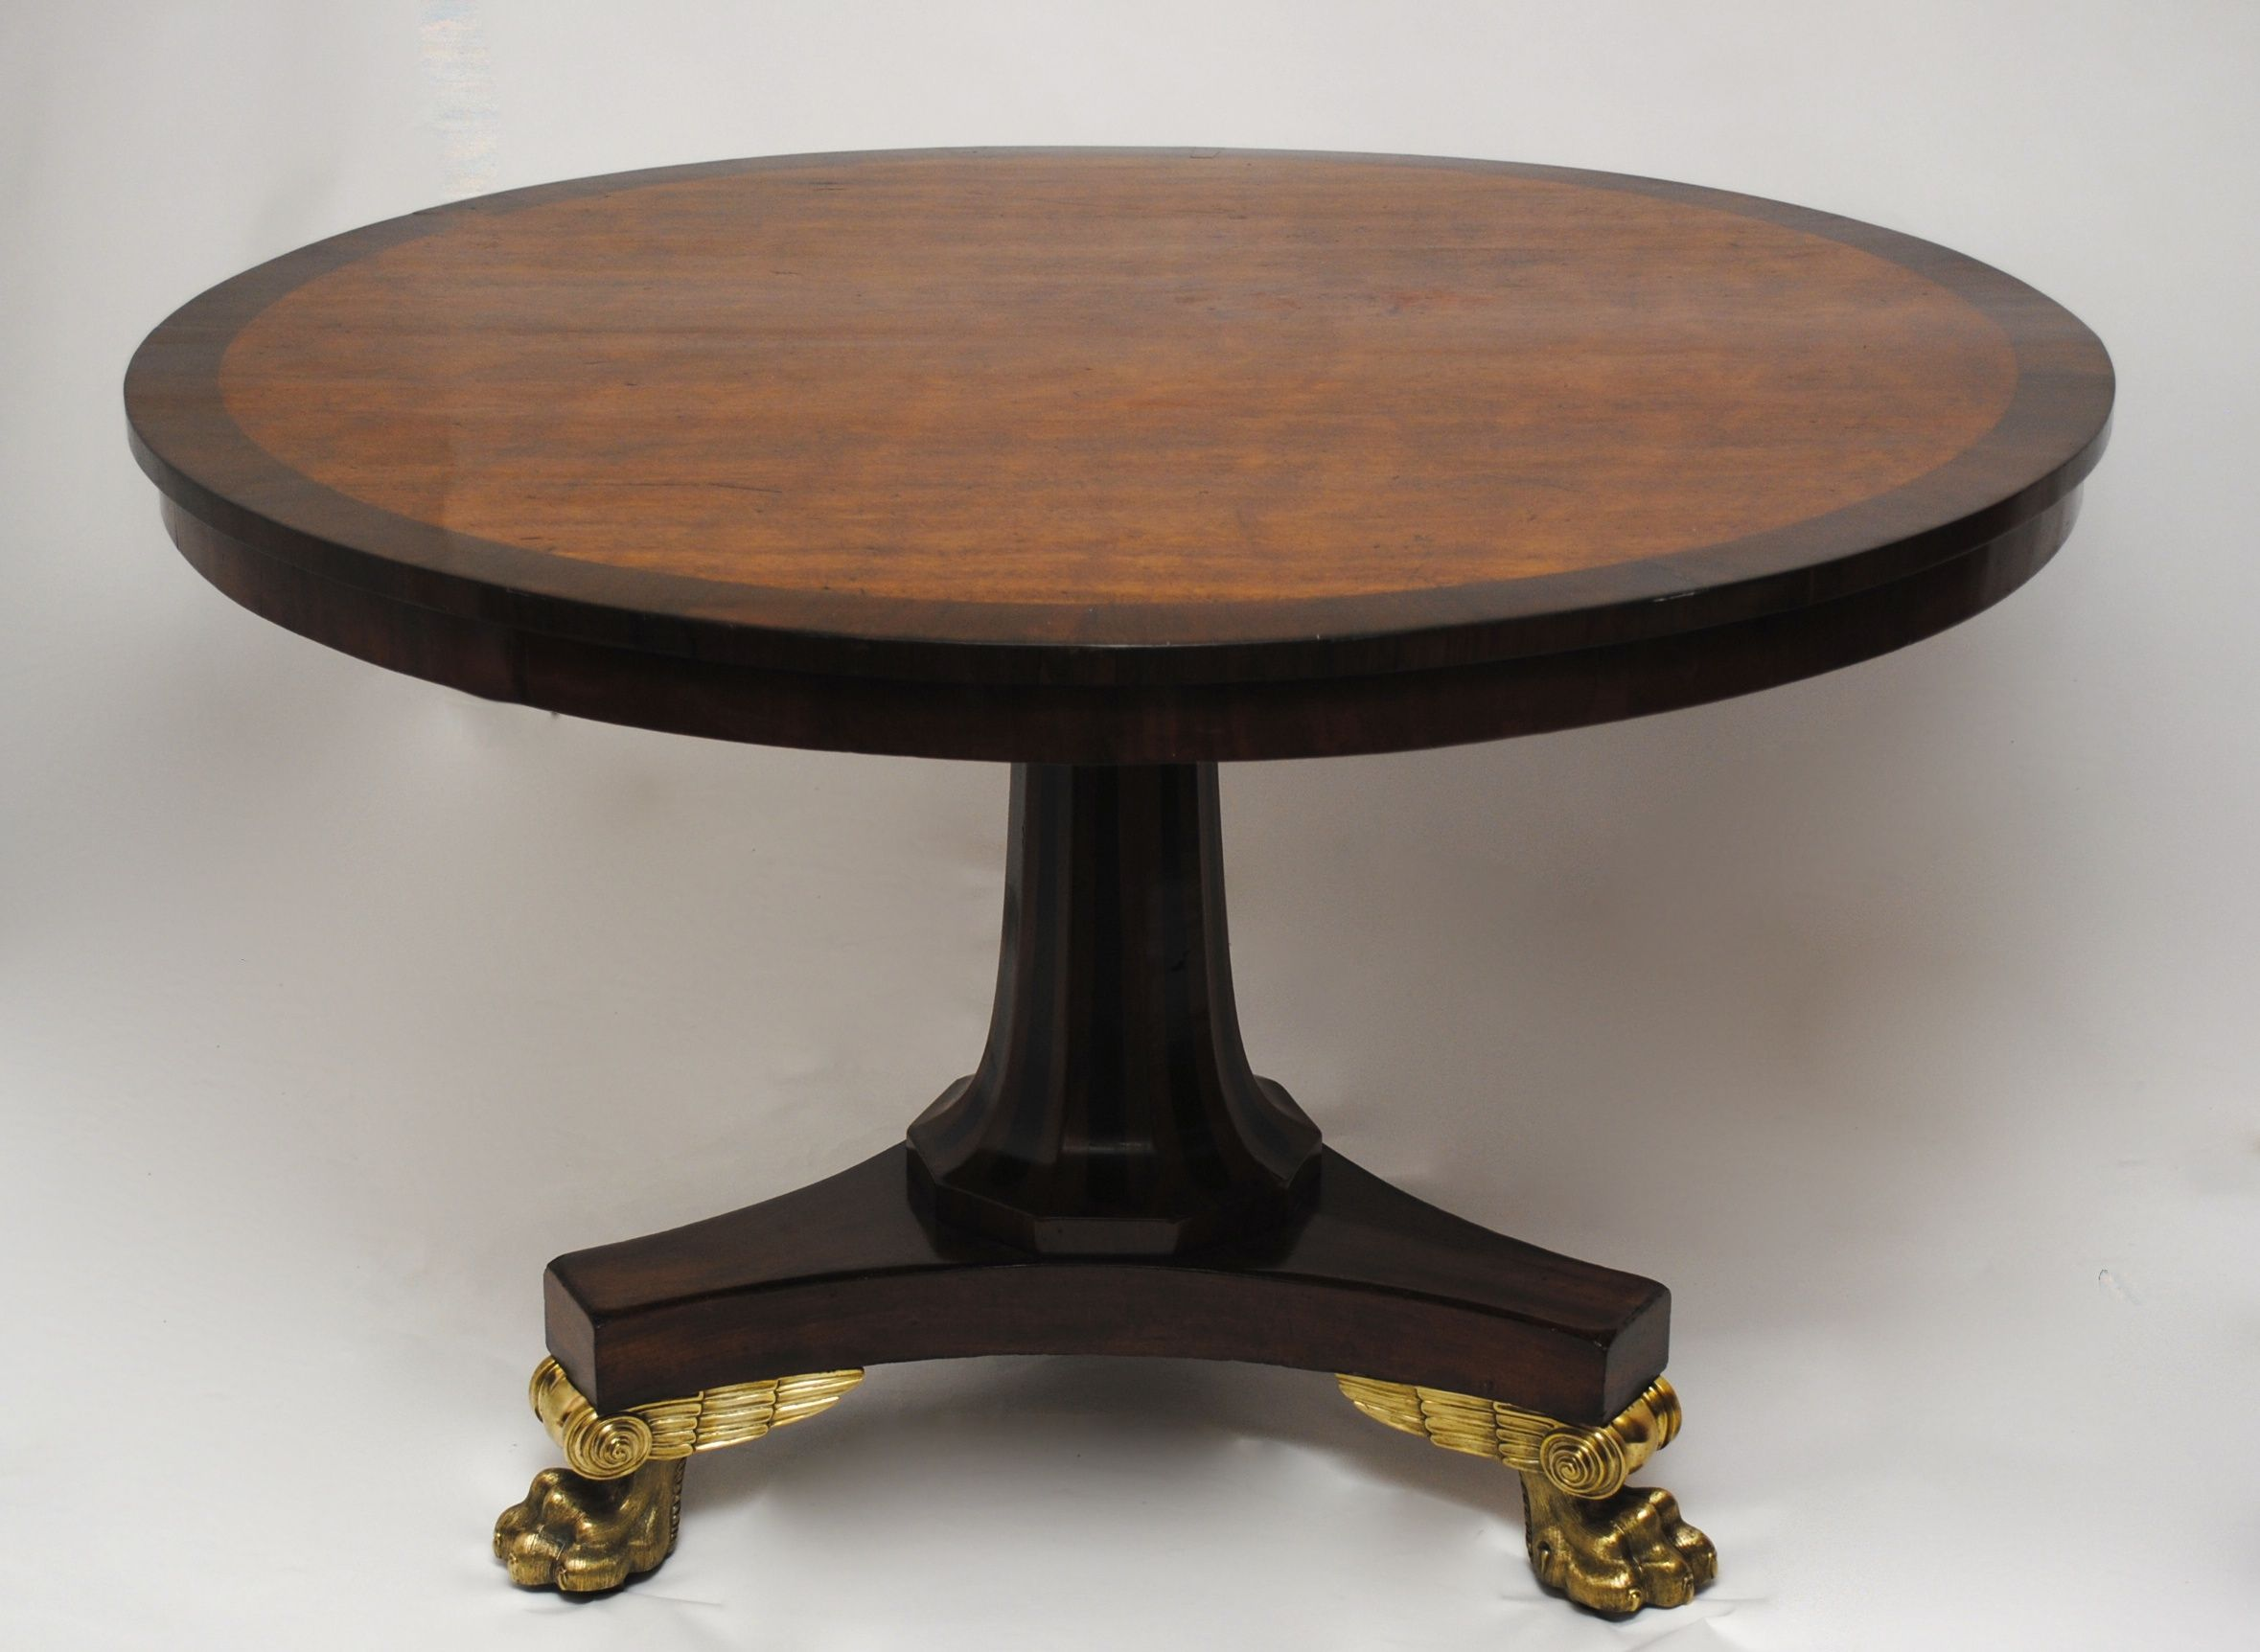 A Regency figured mahogany centre table circa 1810 possibly by